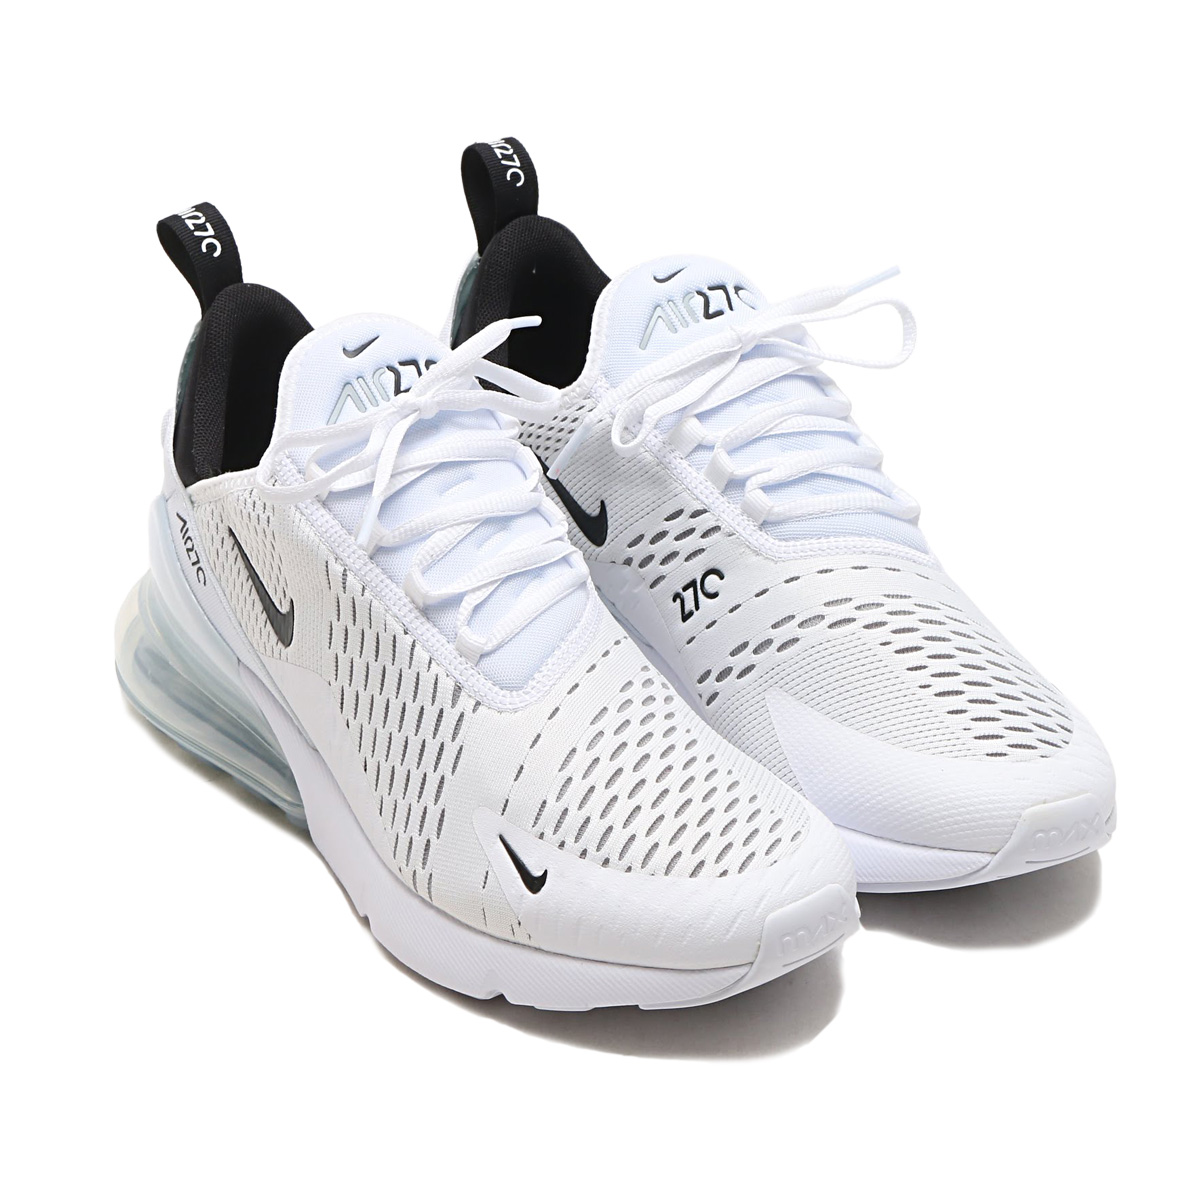 reputable site d380f ad0fc NIKE AIR MAX 270 (Kie Ney AMAX 270) (WHITE BLACK-WHITE ...